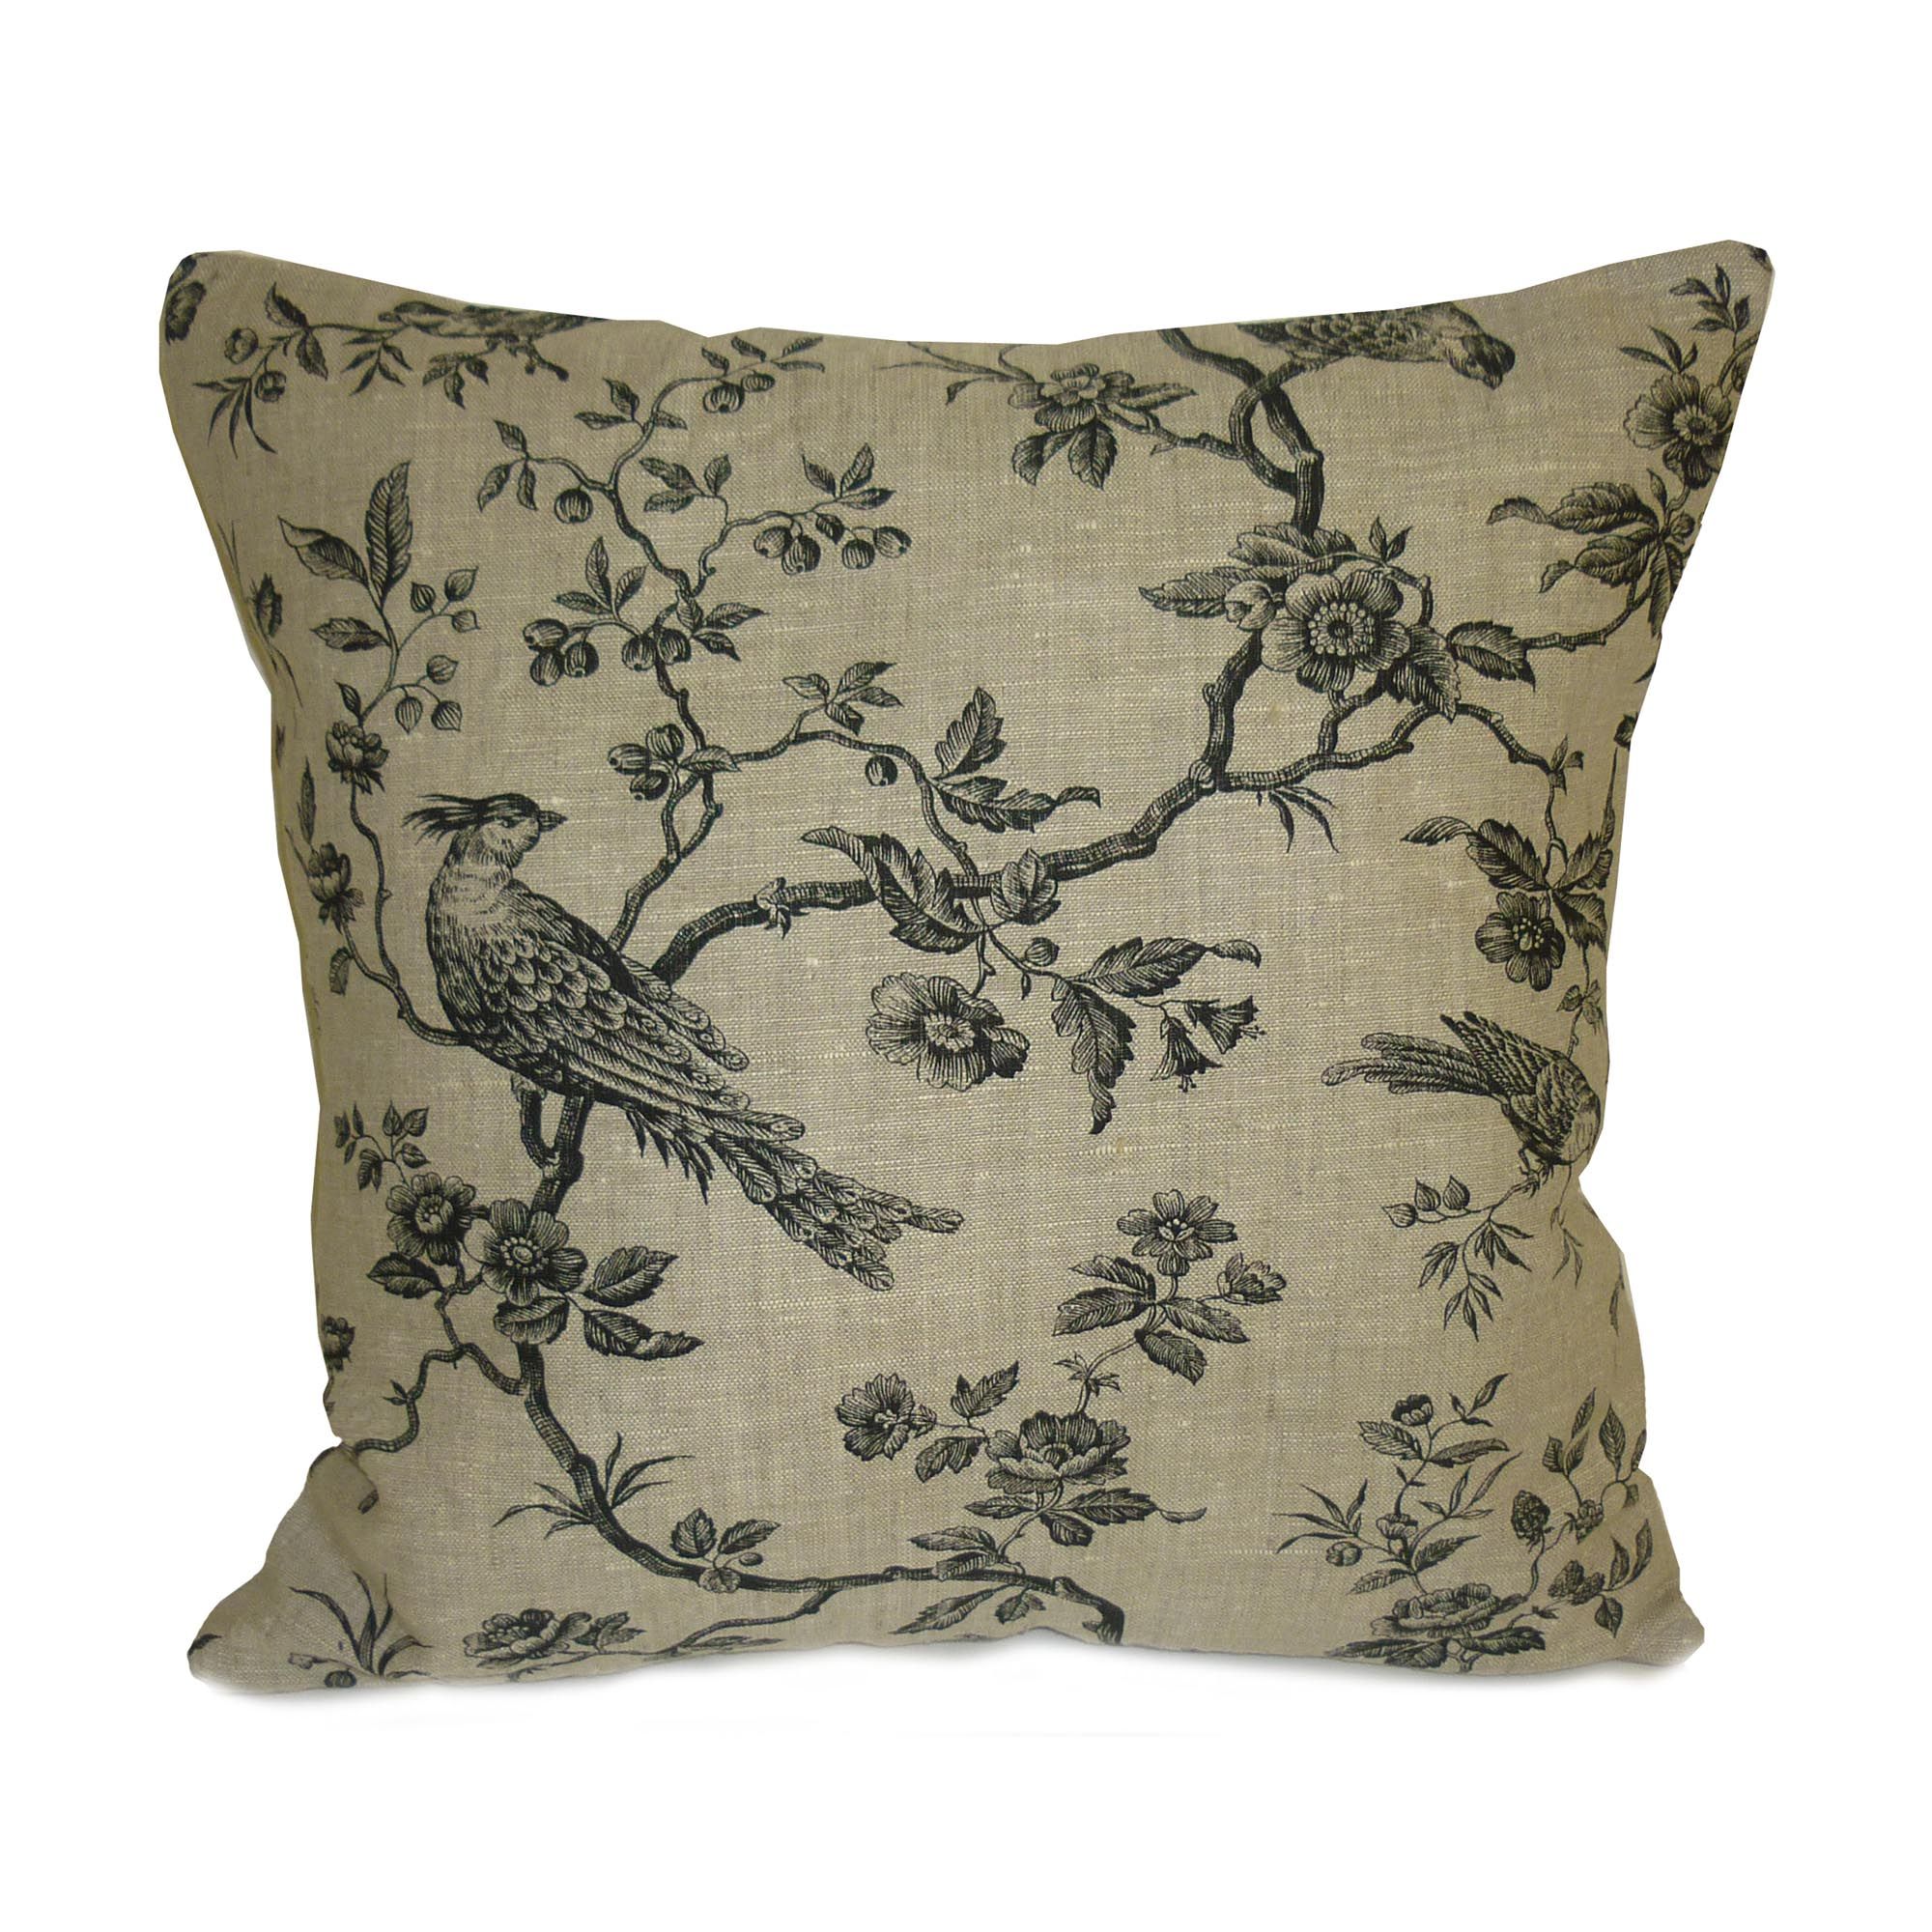 Black Eastern Birds Cushion